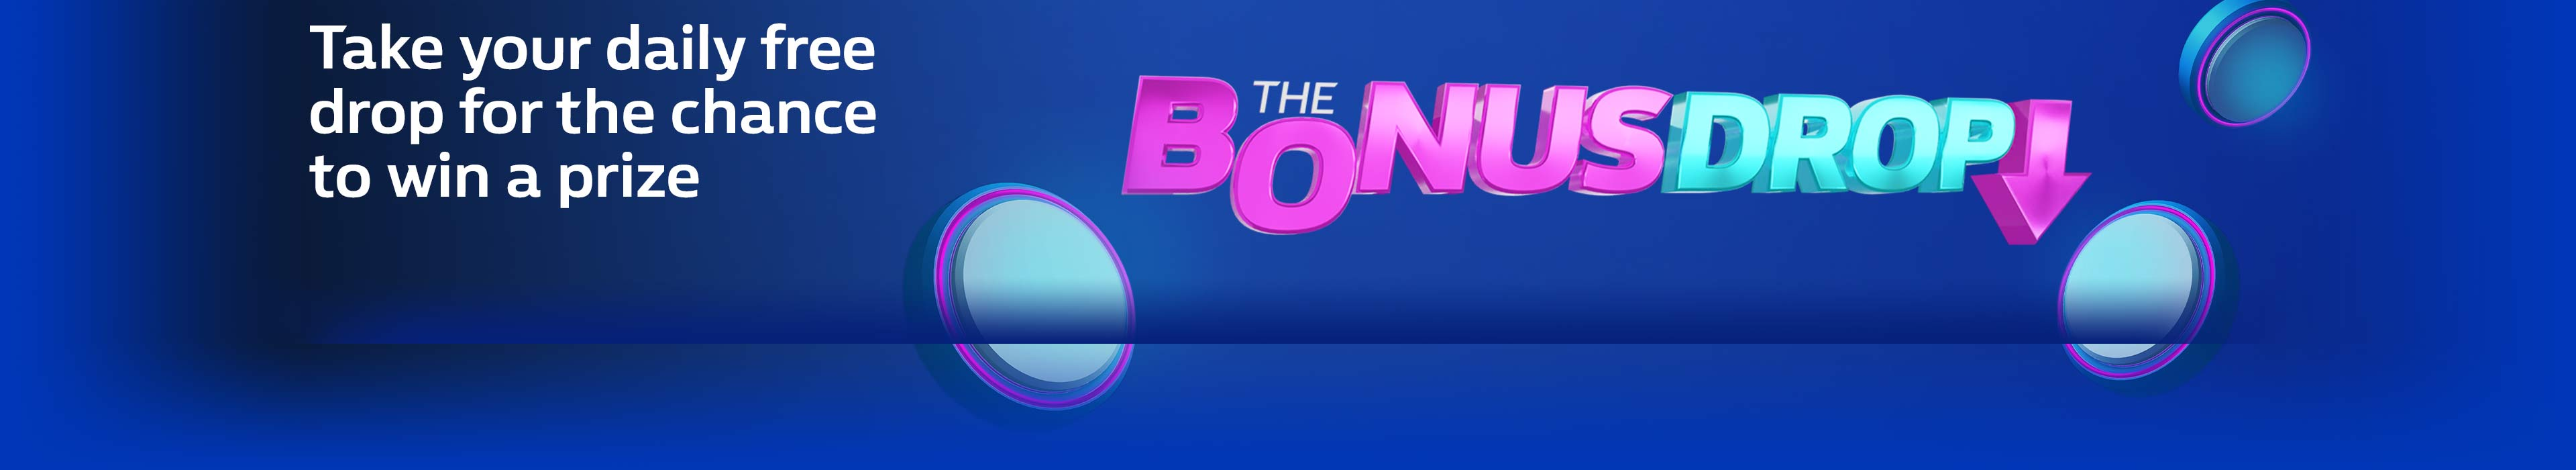 The Bonus Drop